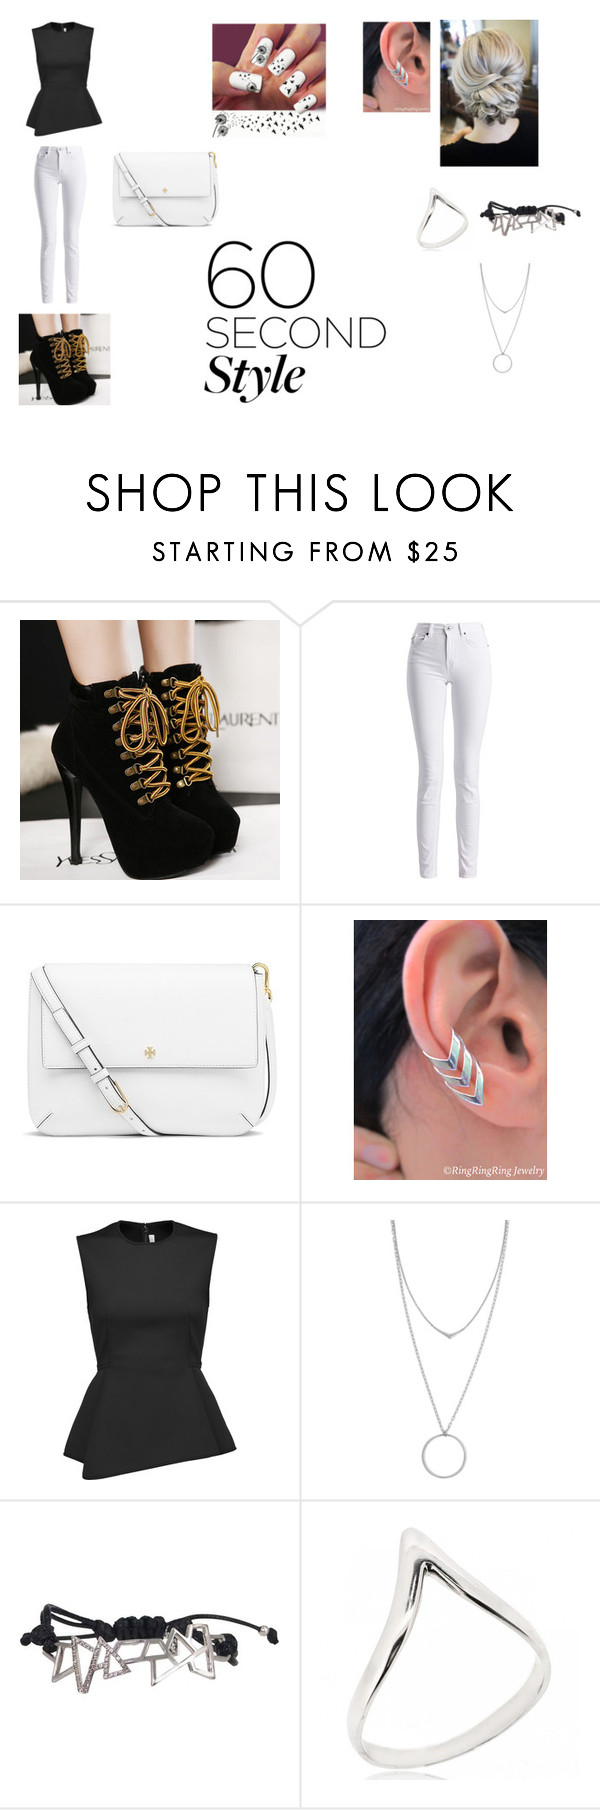 """""""#60secondstyle #jobinterview"""" by izzcampbell ❤ liked on Polyvore featuring Barbour International, Tory Burch, Alexander Wang, Botkier, Ona Chan, jobinterview and 60secondstyle"""